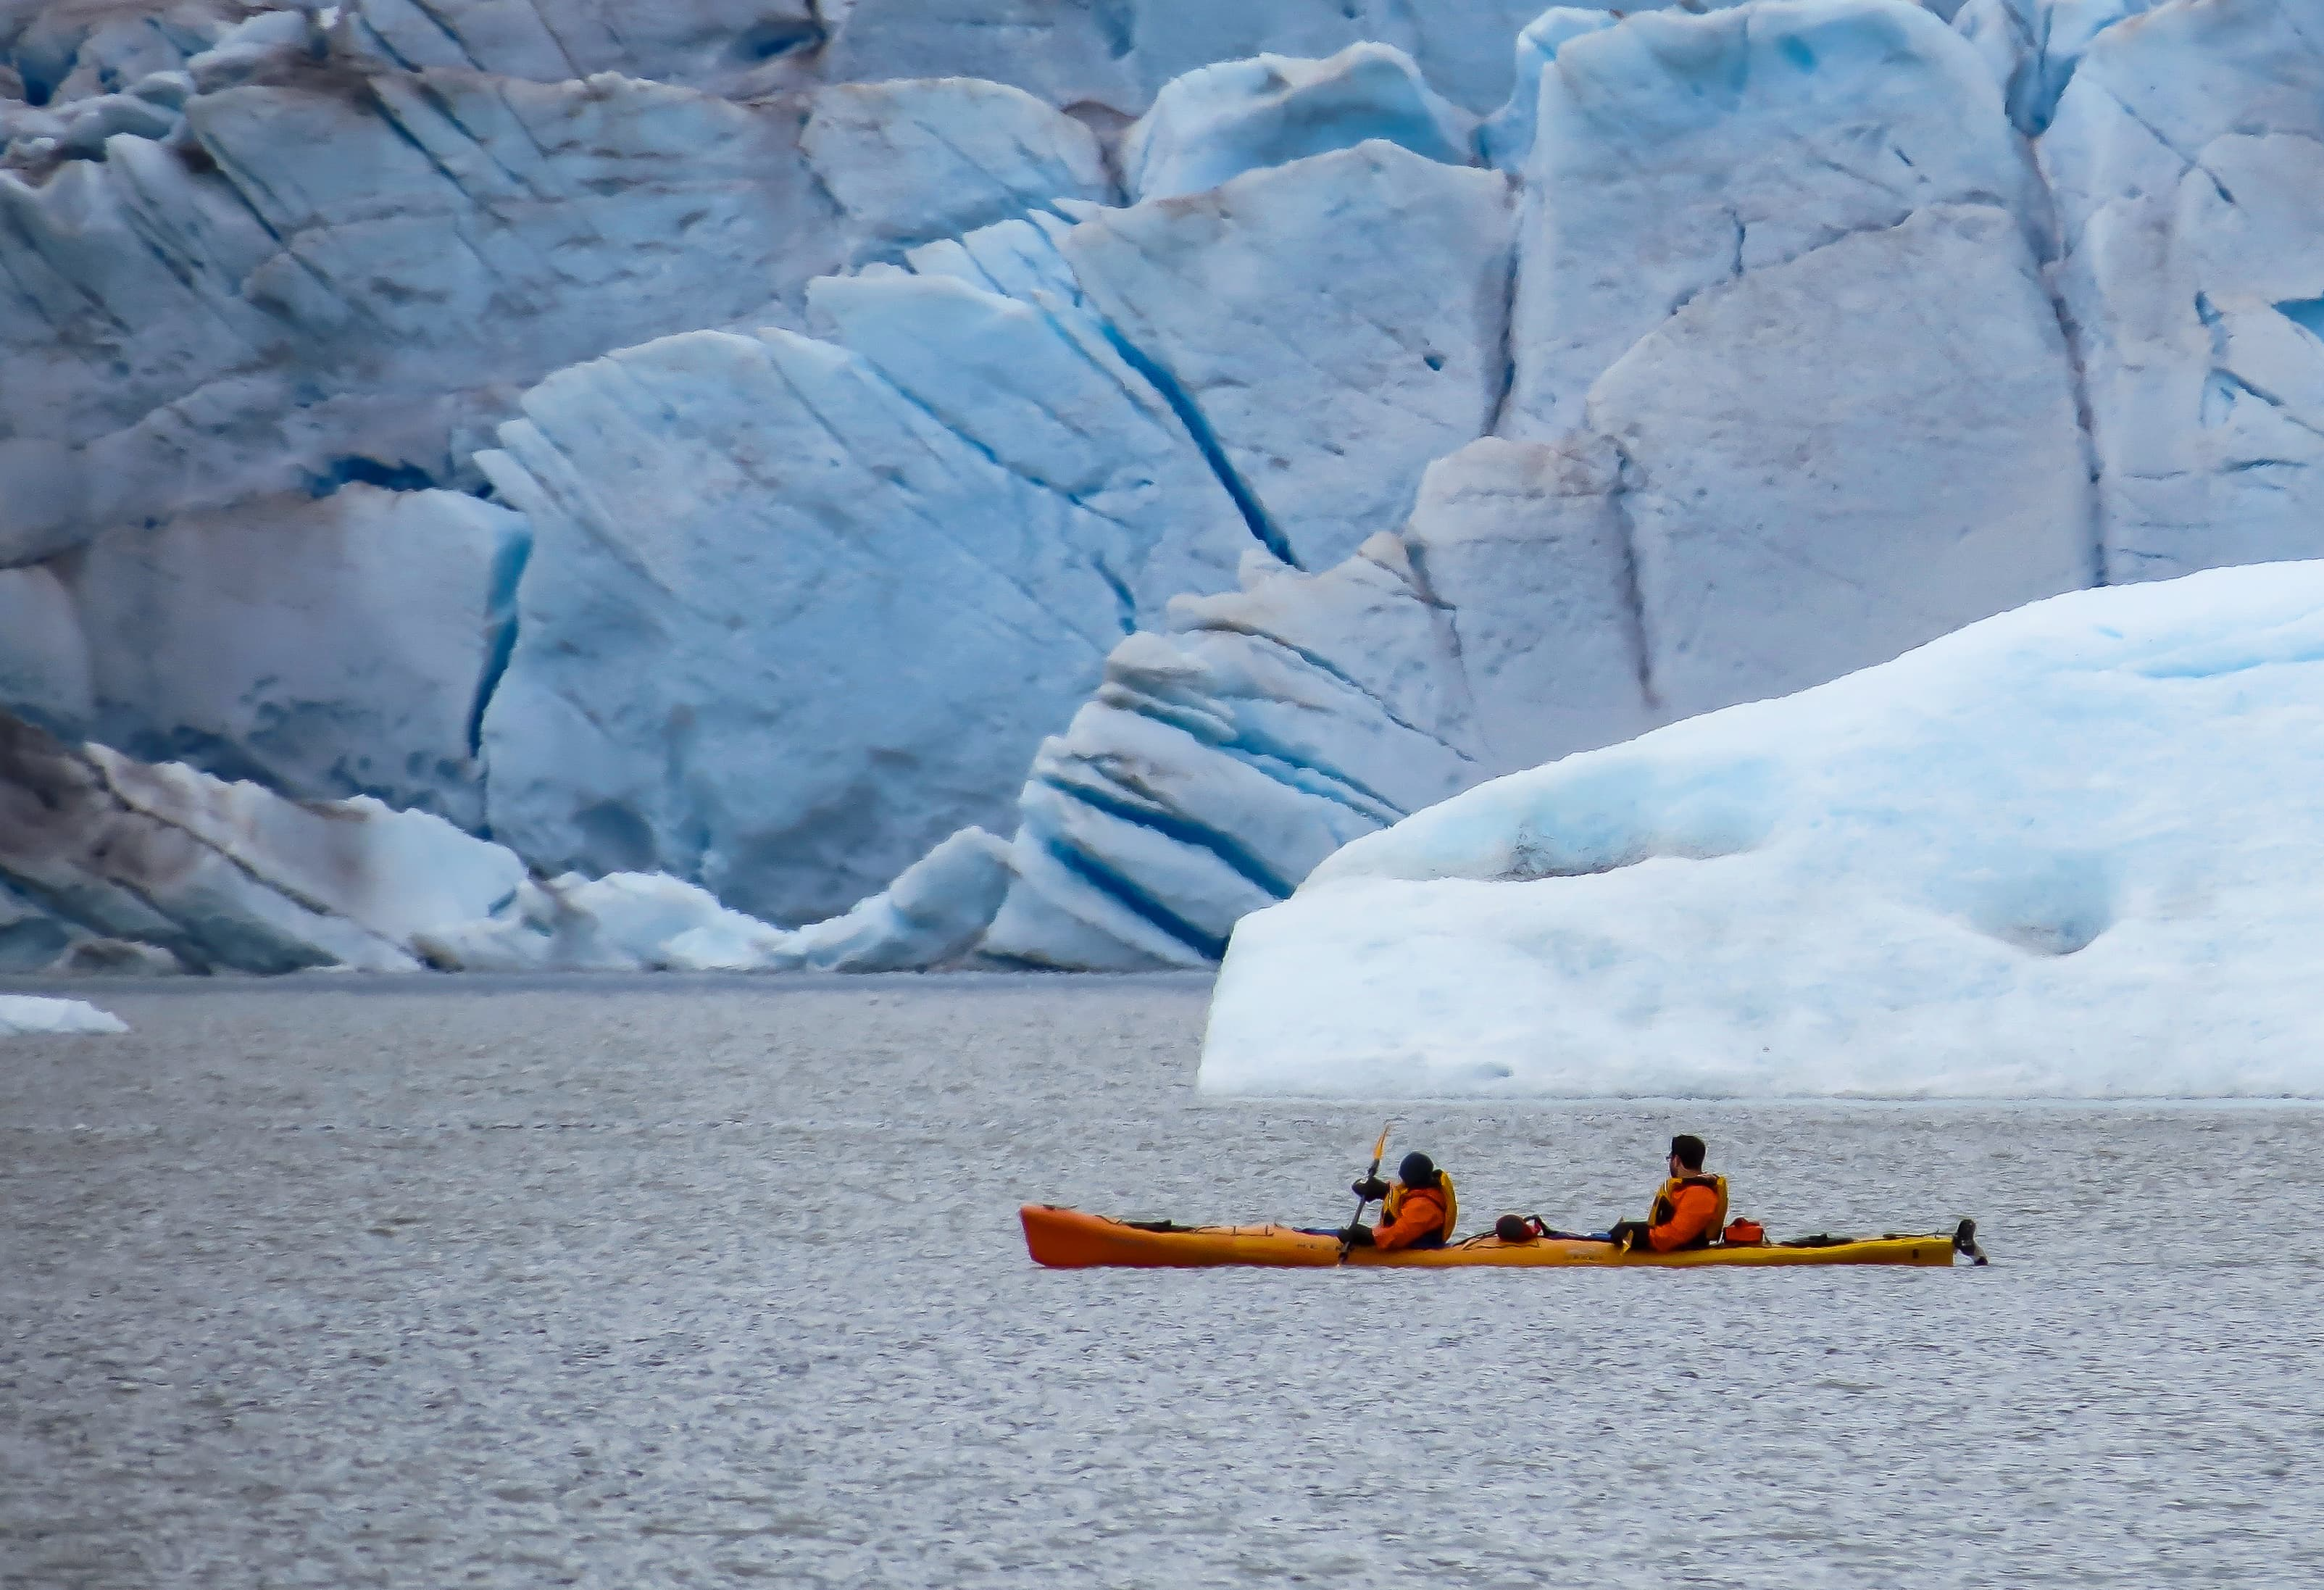 two people in a double kayak in the water next to a glacier